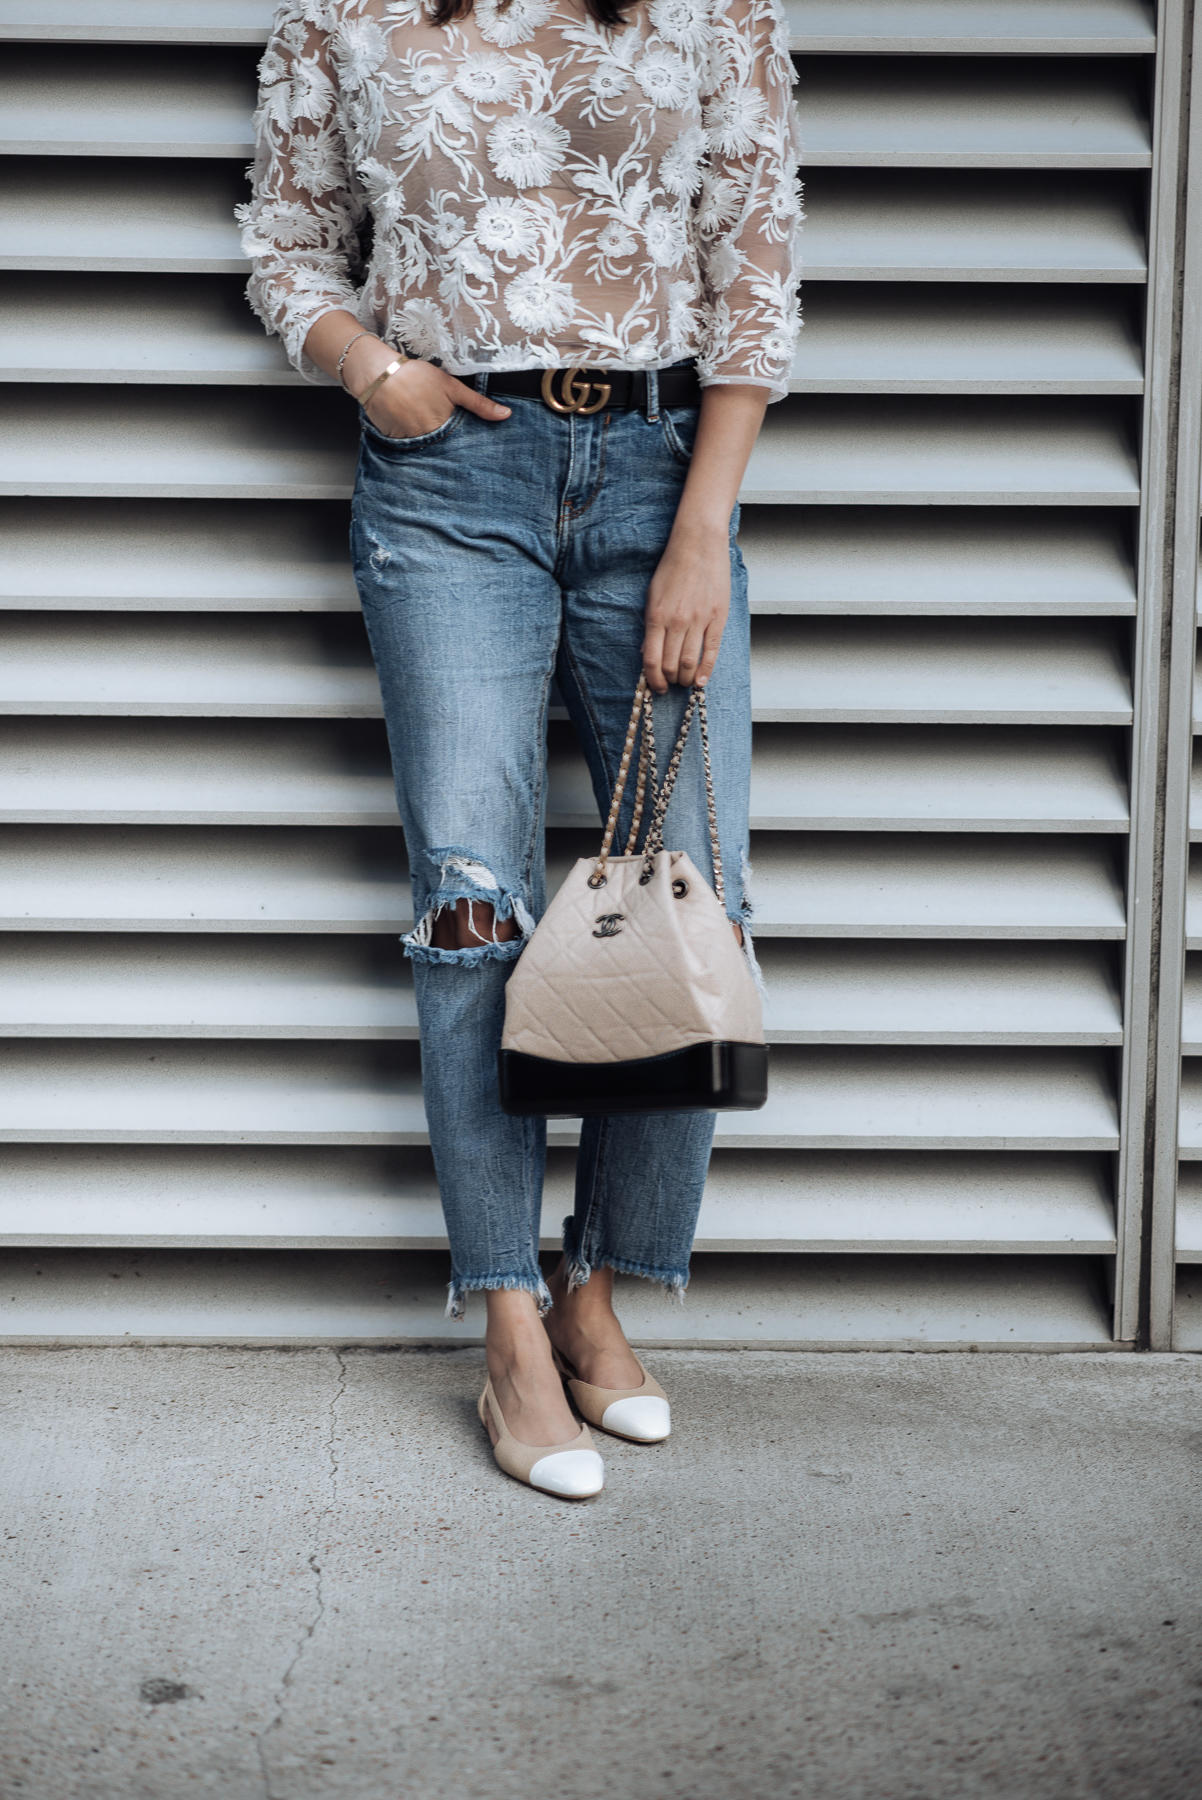 Image of Summer time | lace top | The Cultured Fashionista | Chanel Handbag